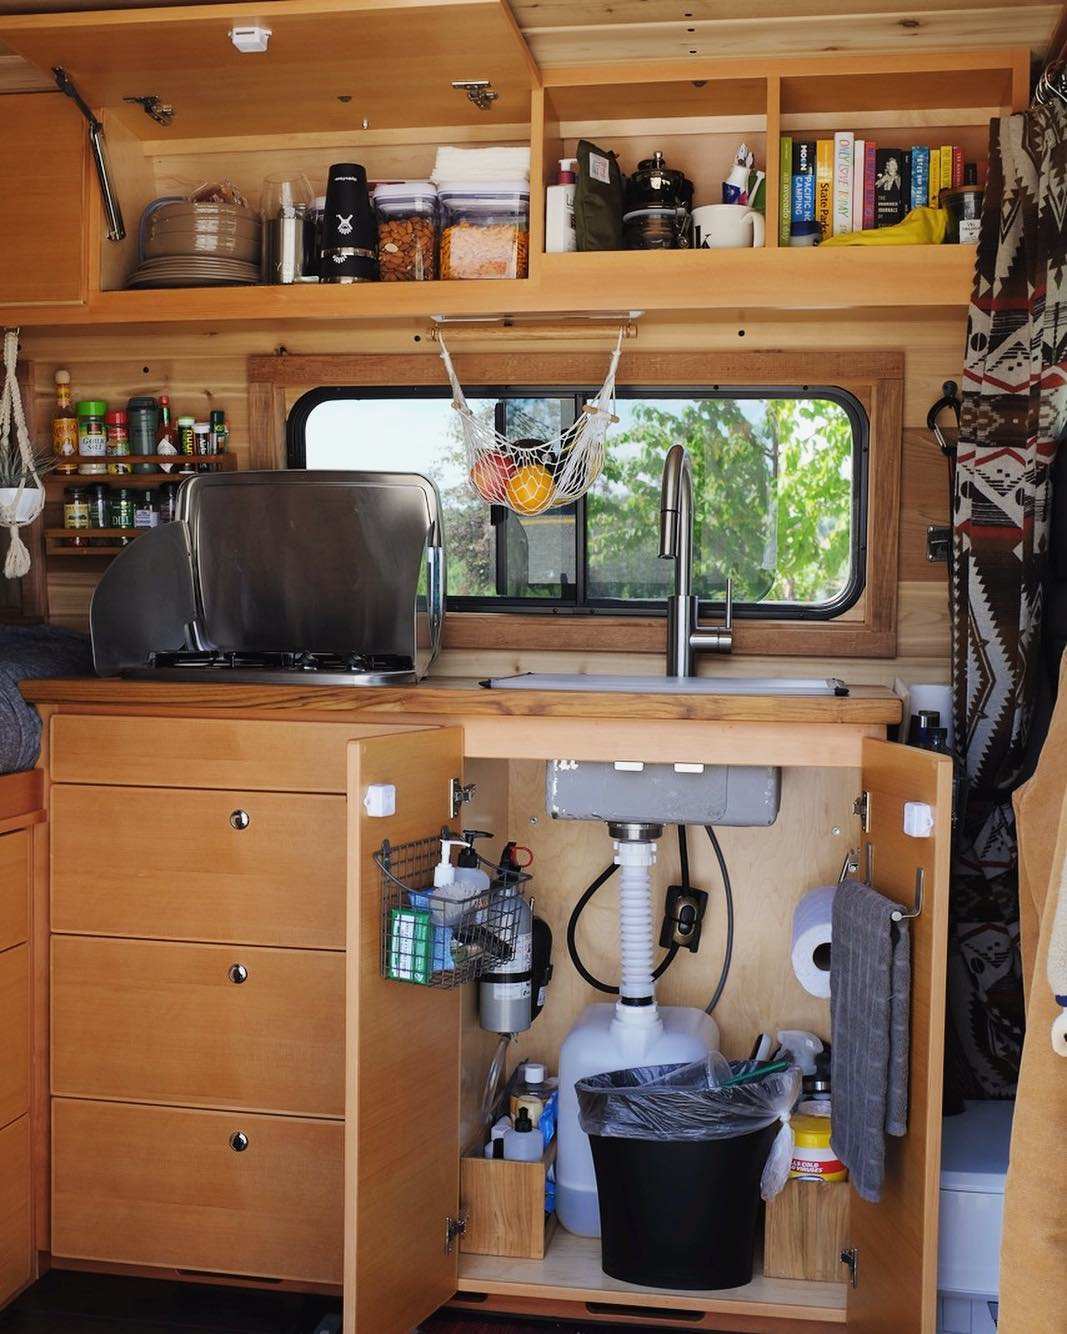 building a DIY water system into a campervan conversion